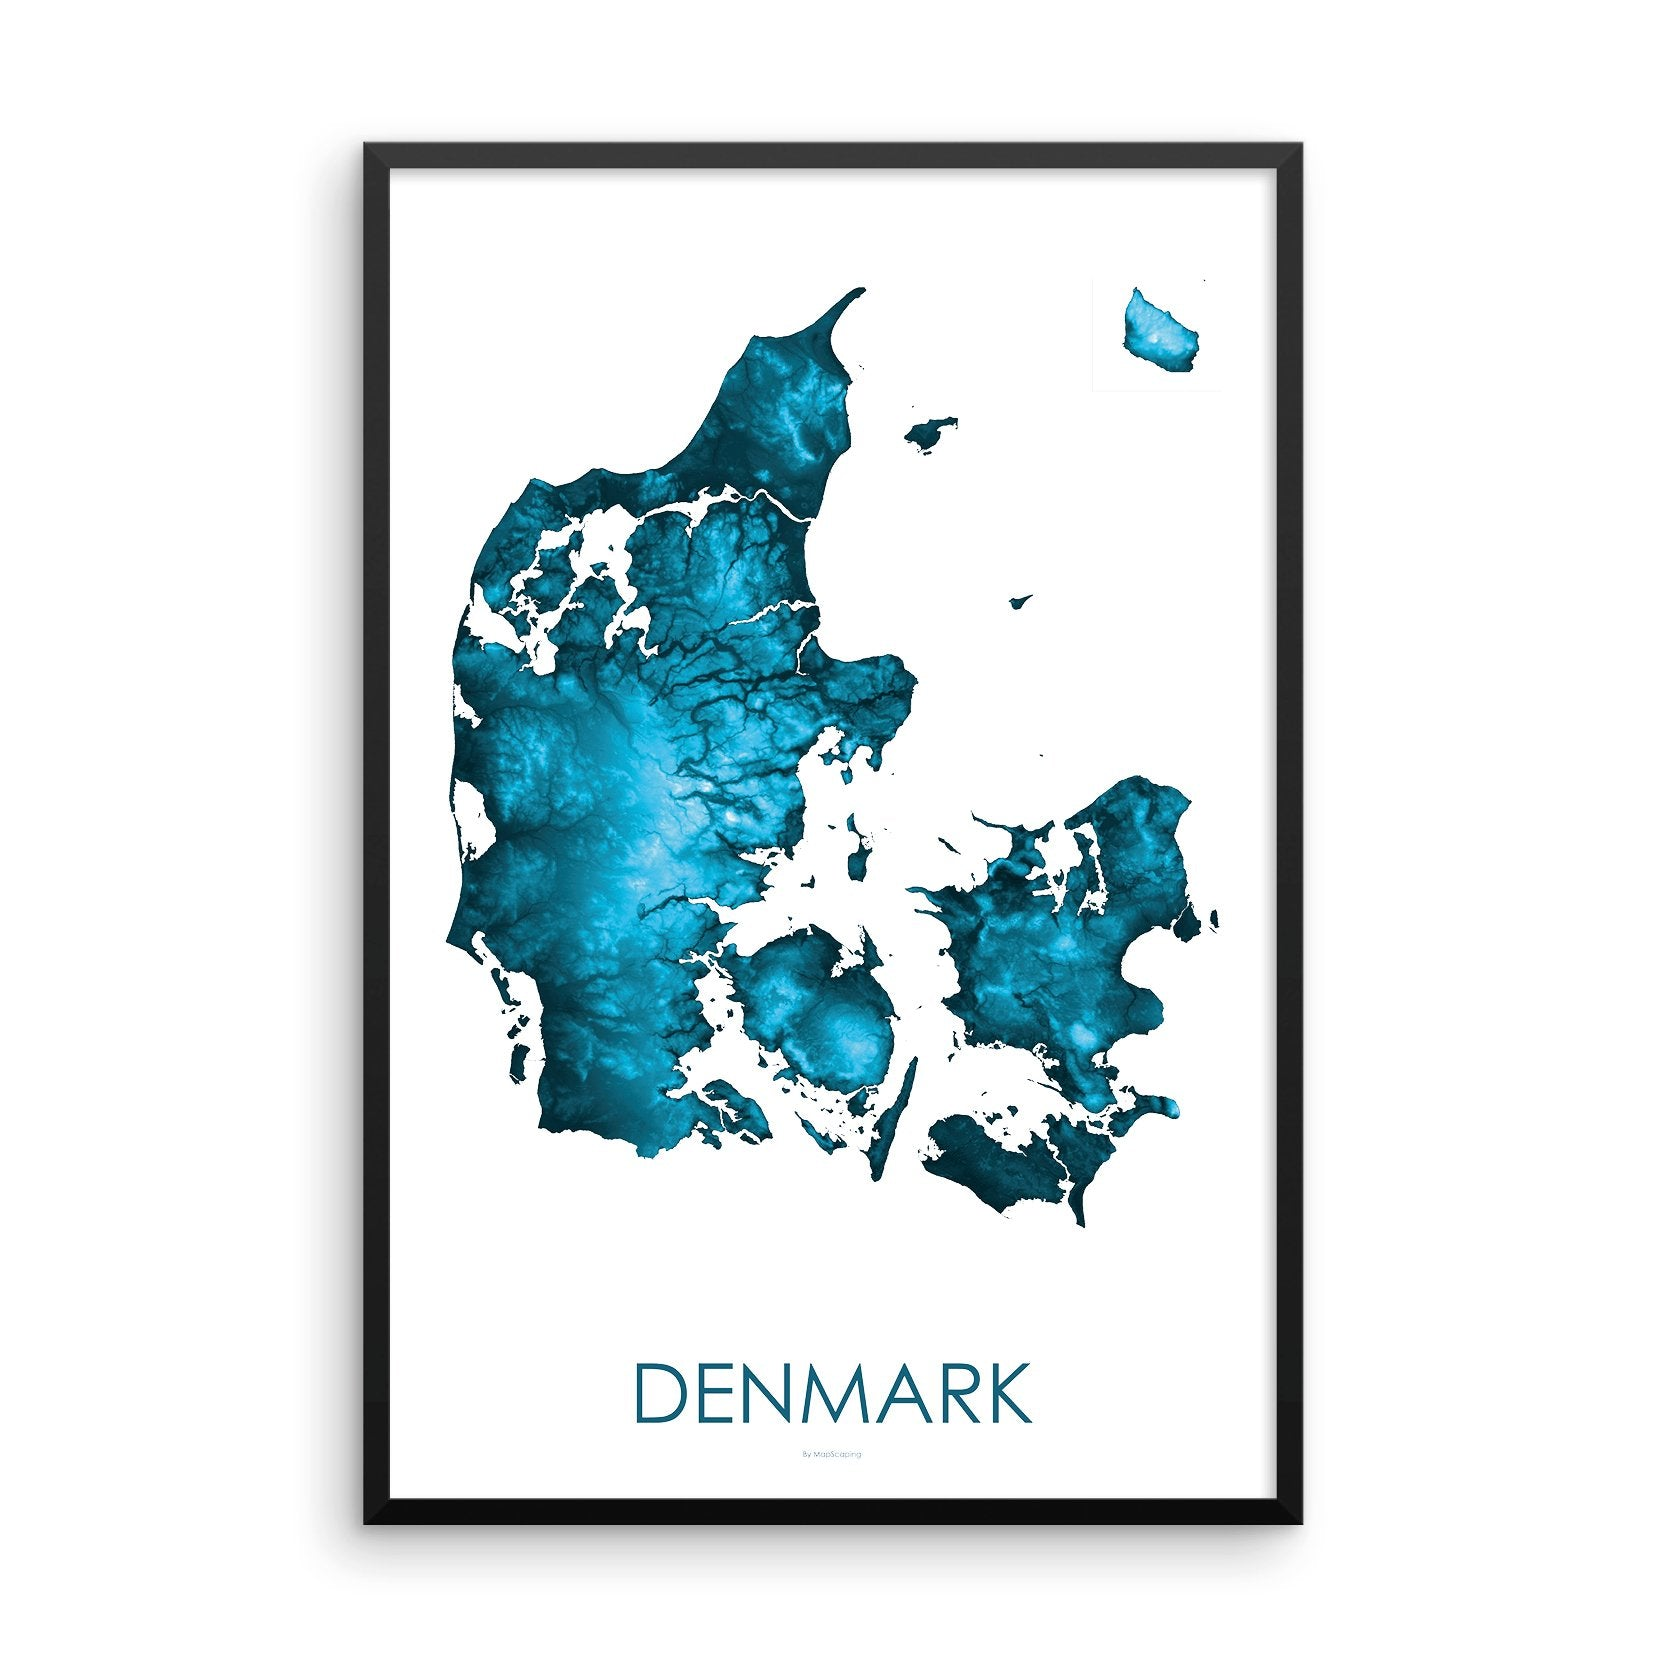 Framed petroleum blue poster map of Denmark and the danish islands, detailed map print showing the mountains of Denmark's landscape.